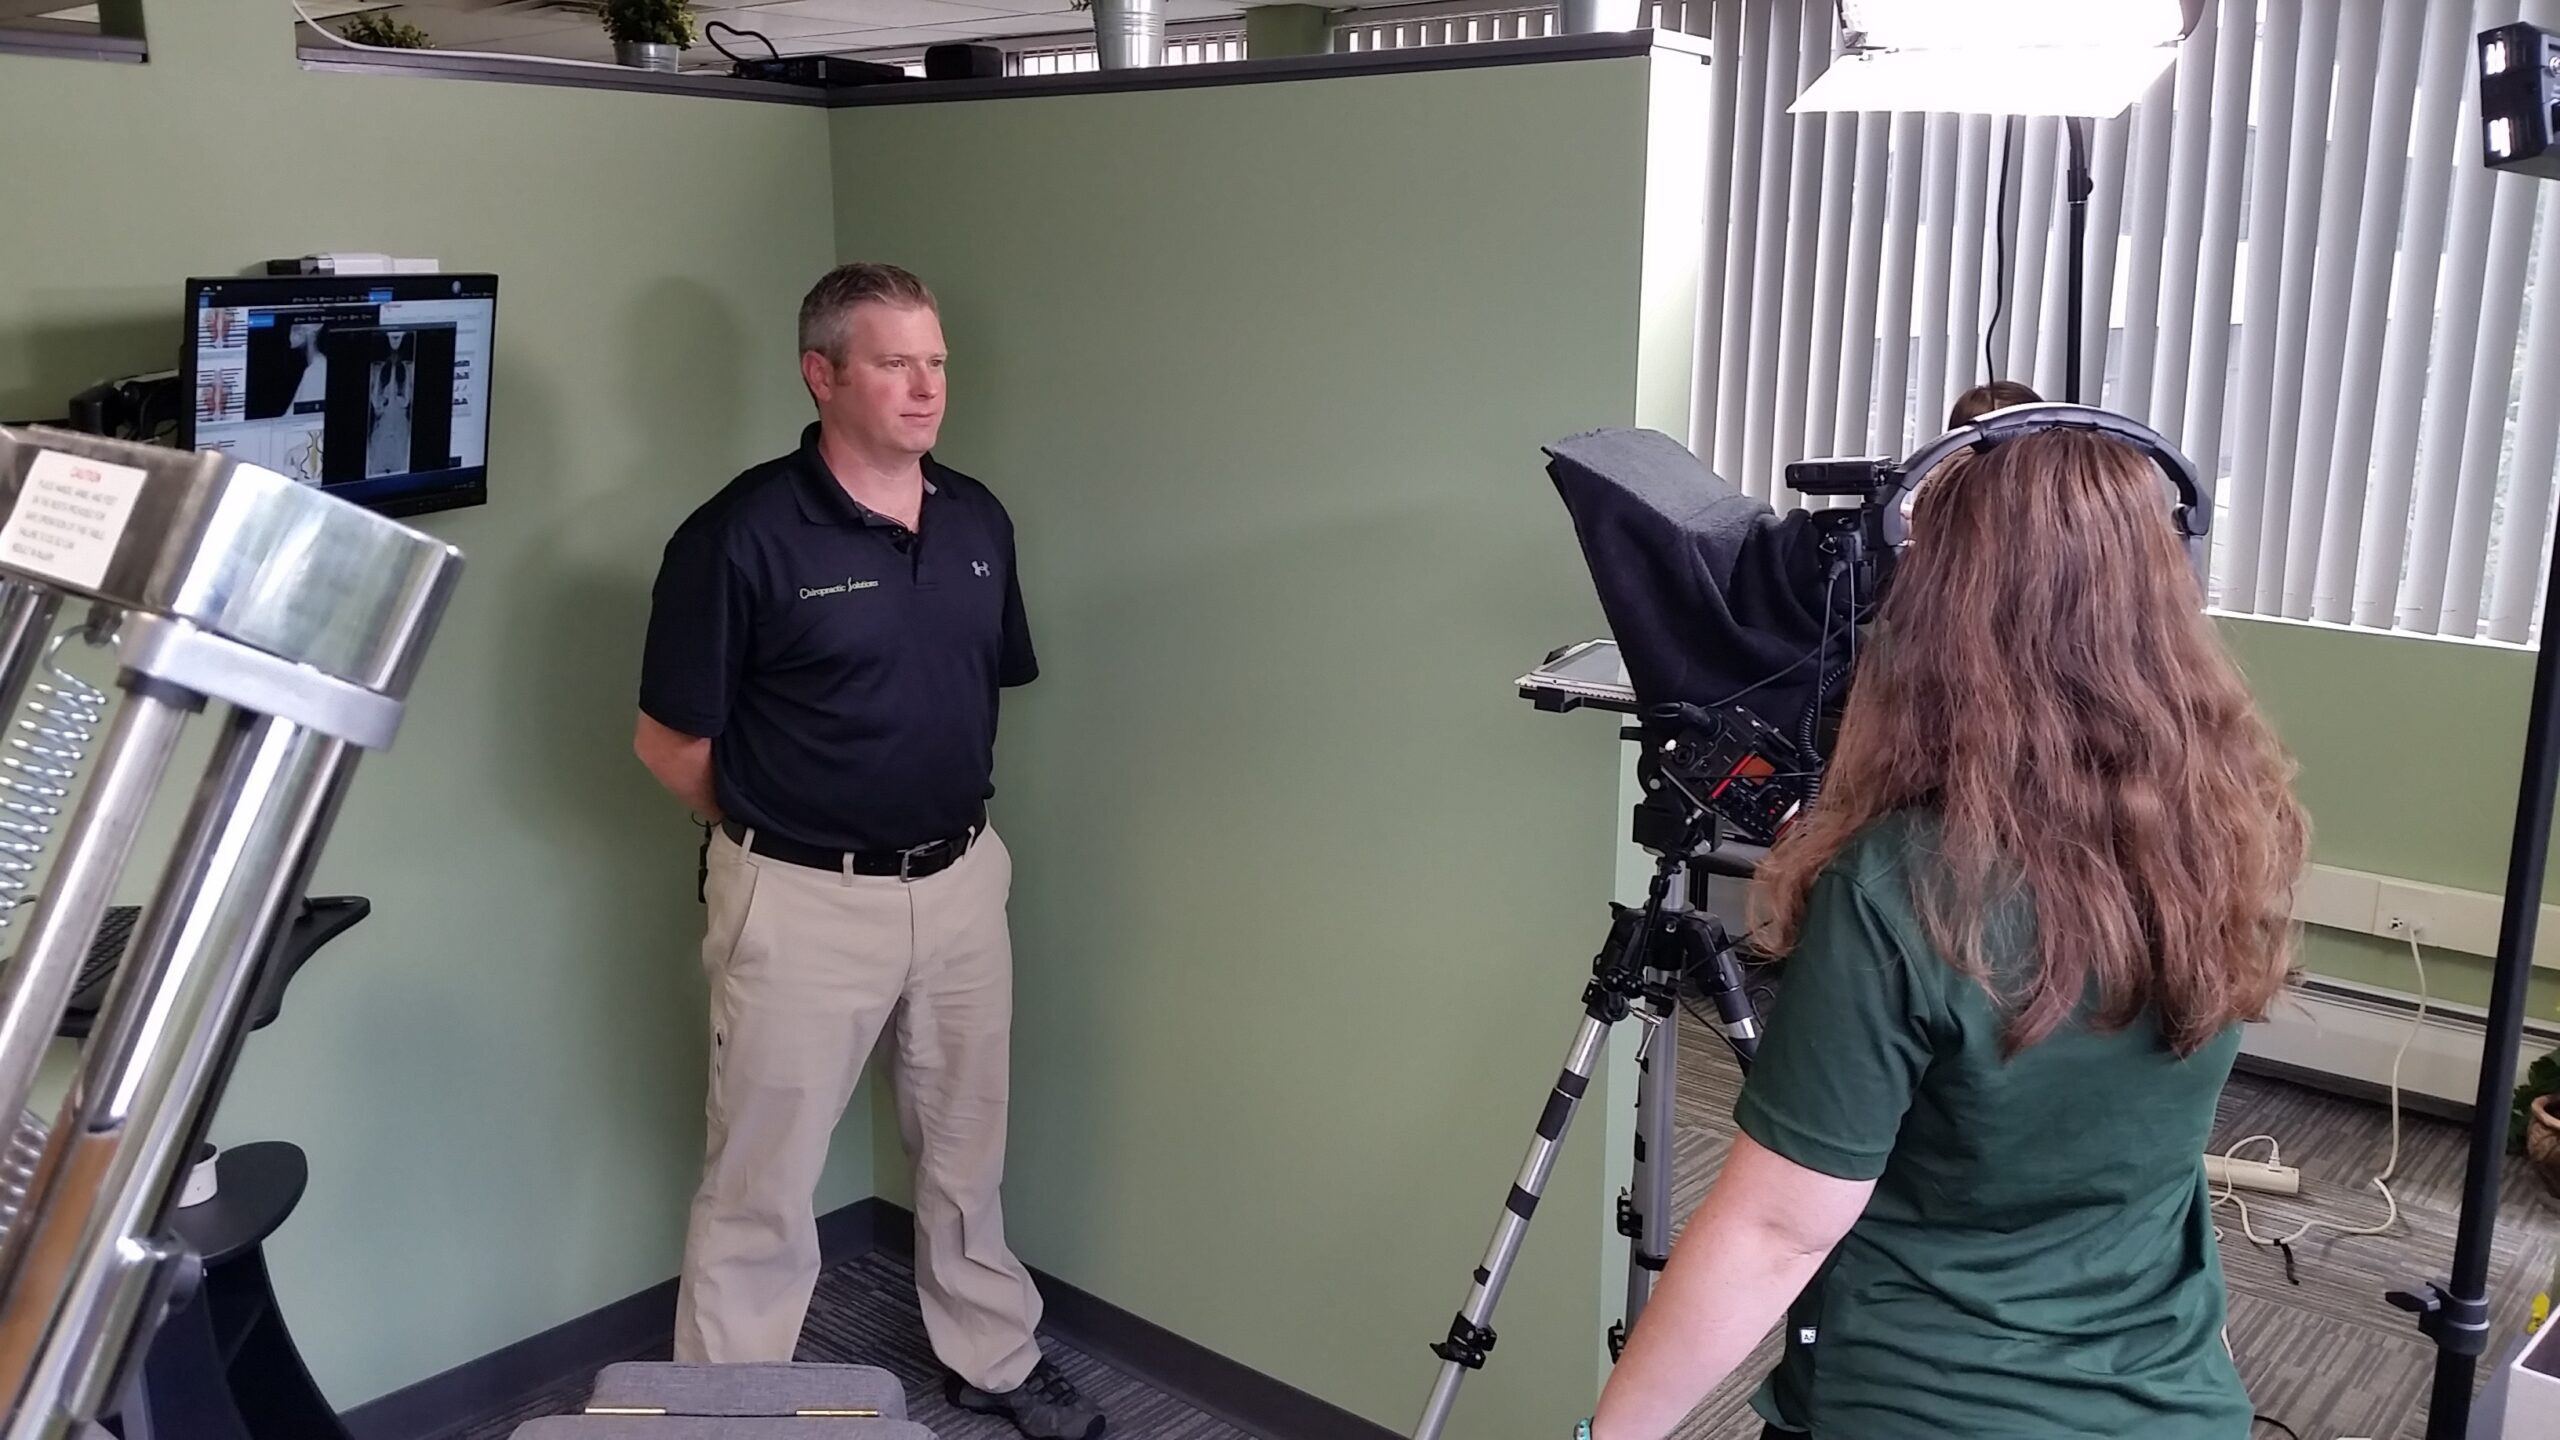 Lead Editor and Creative Director, Candice Moore, using a teleprompter while recording a video with Dr. Chris Hauck of Chiropractic Solutions